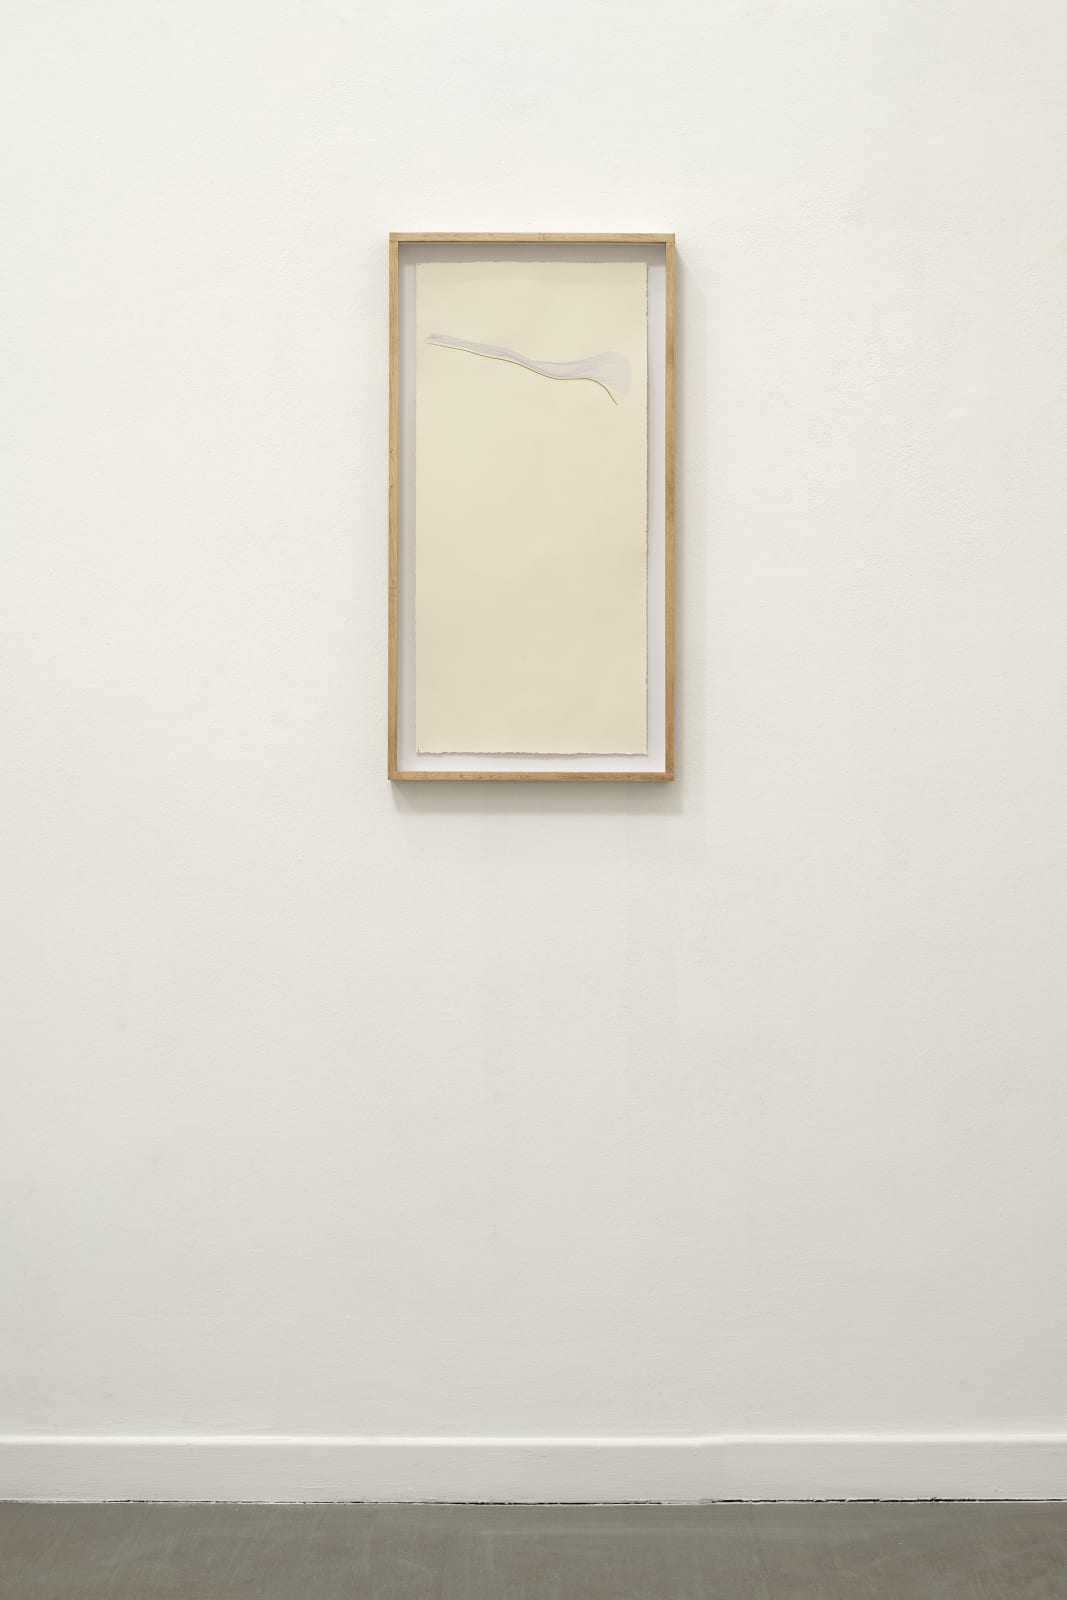 Beatrice Pediconi Untitled Small #2, 2020 Emulsion lift on paper cm 66x30, with frame and glass cm 73x38